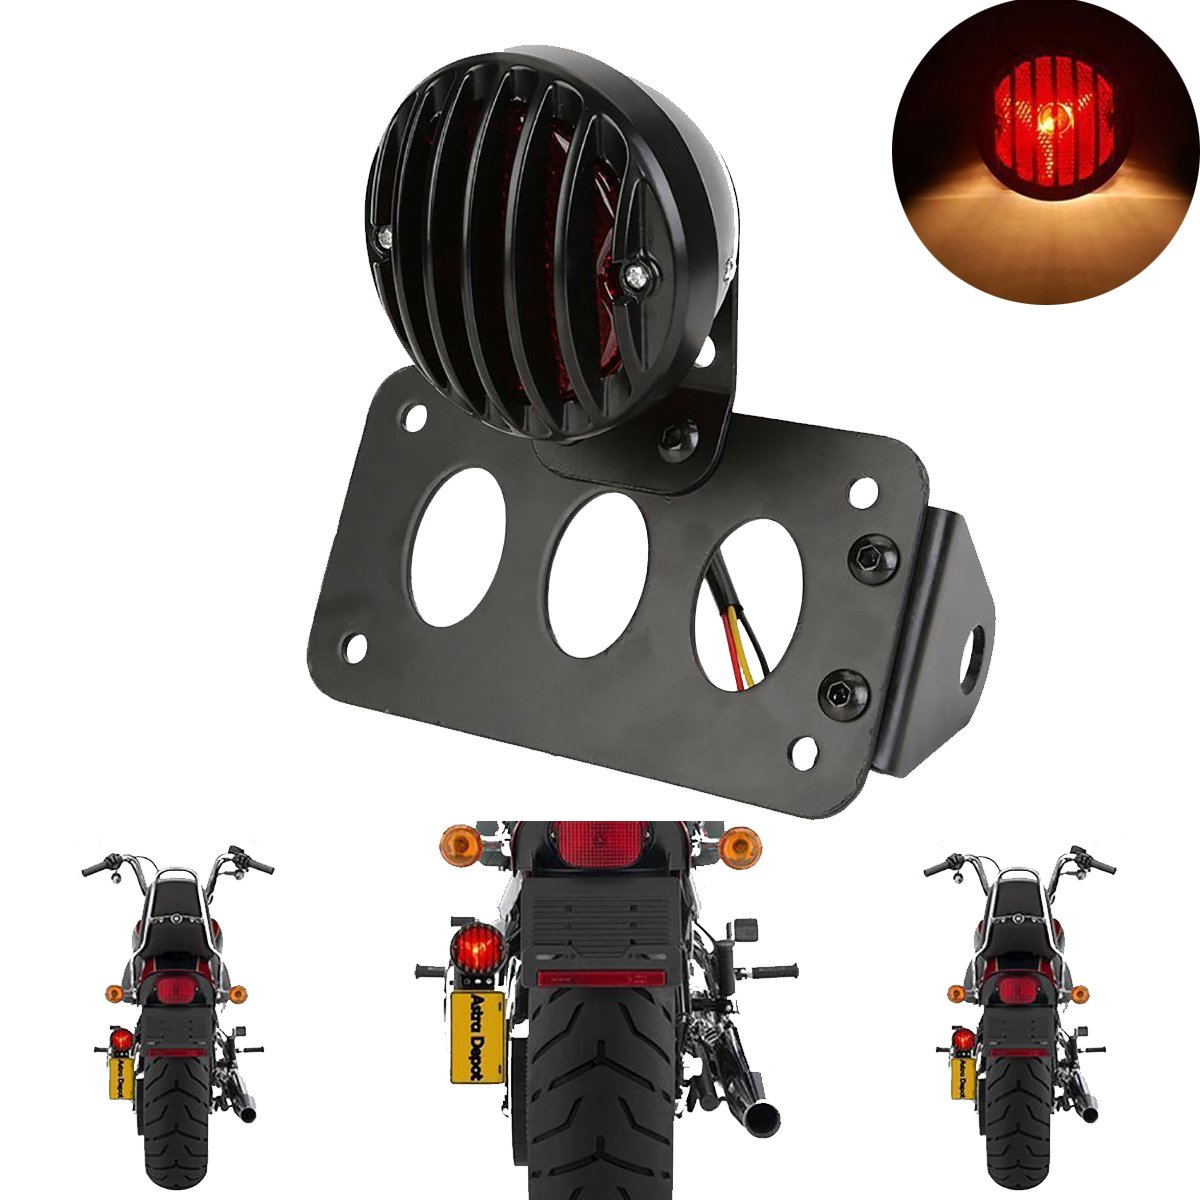 TUINCYN Red Motorcycle Tail Light with Black Heavy Duty Motorbike 12V Brake Stop Running Light Indicators Blinkers Lights with License Plate Holder 1-Pack BHBAZUALIn5366